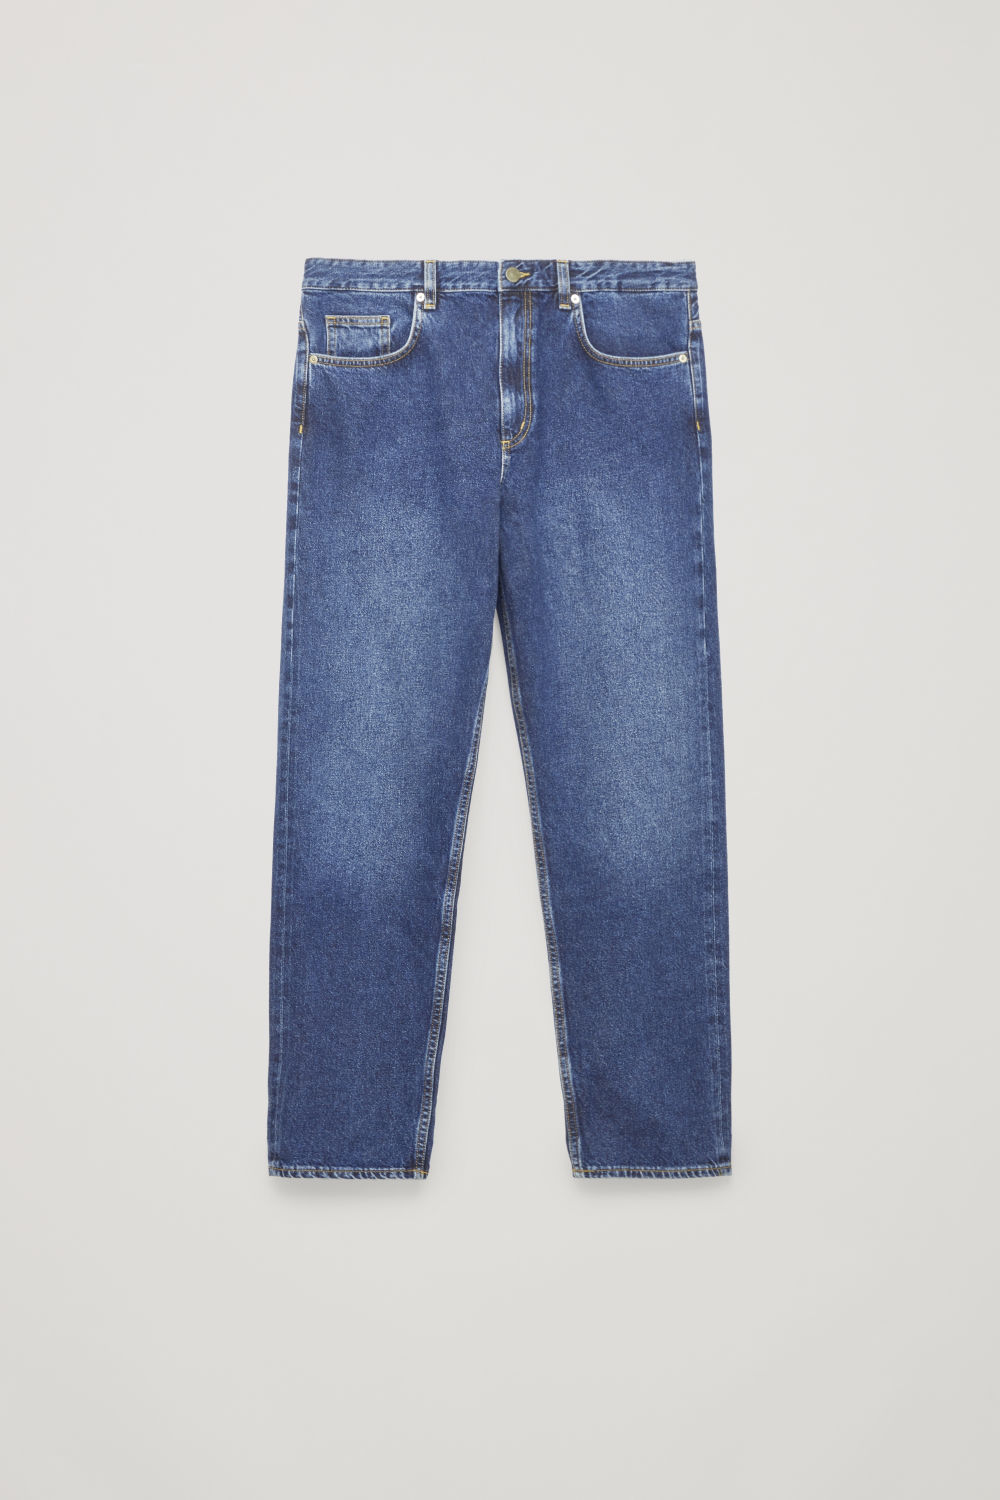 SELVEDGE RELAXED LEG JEANS